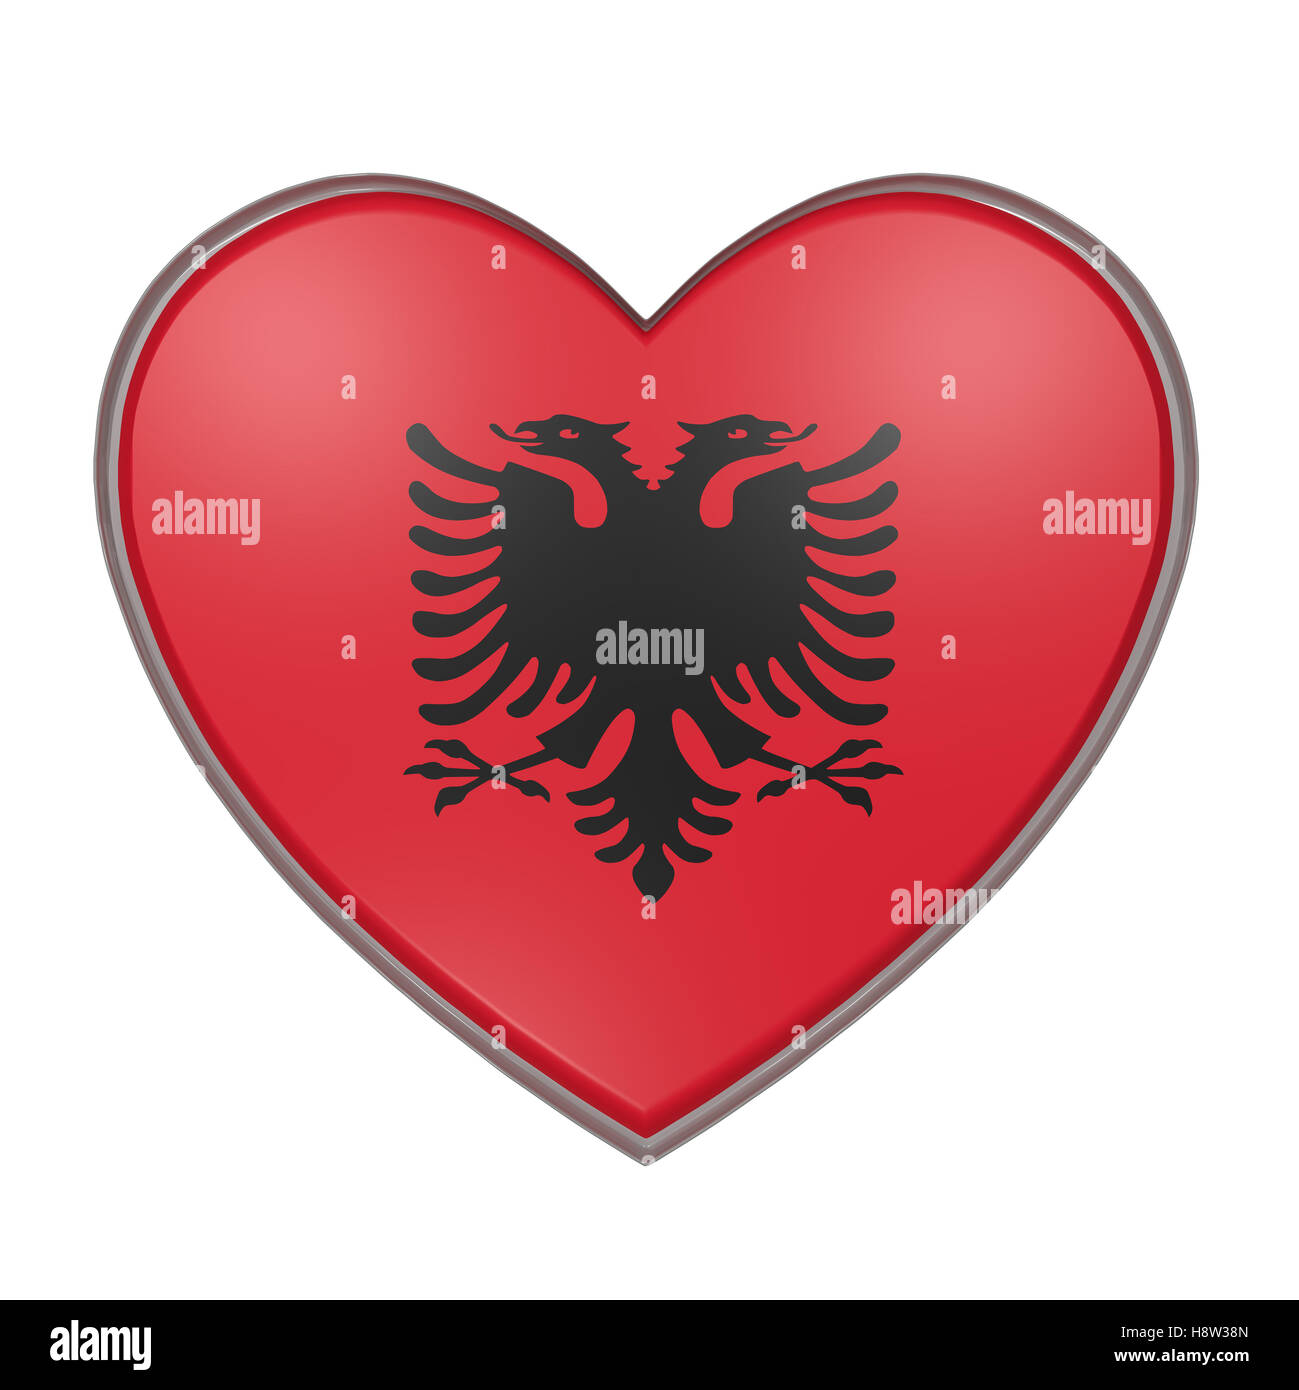 3d rendering of an Albania flag on a heart. White background - Stock Image